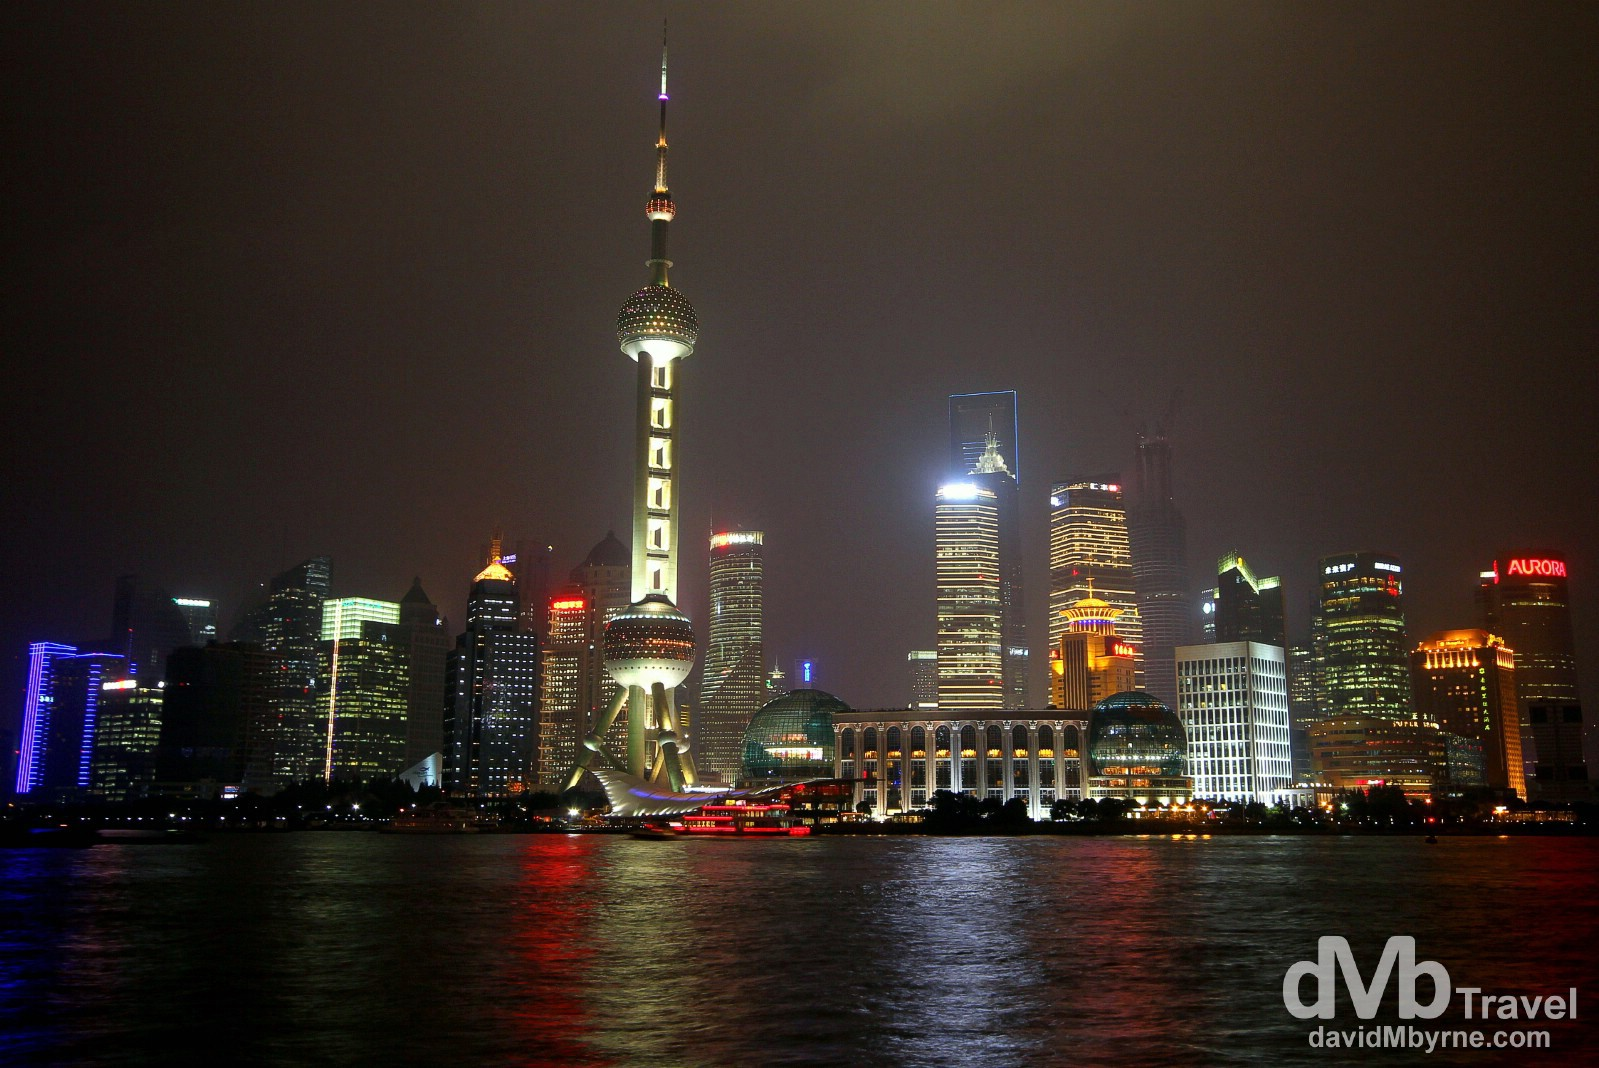 The new Pudong skyline on a dreary October night as seen from the Bund across the Huangpu River. Shanghai, China. October 22nd 2012.